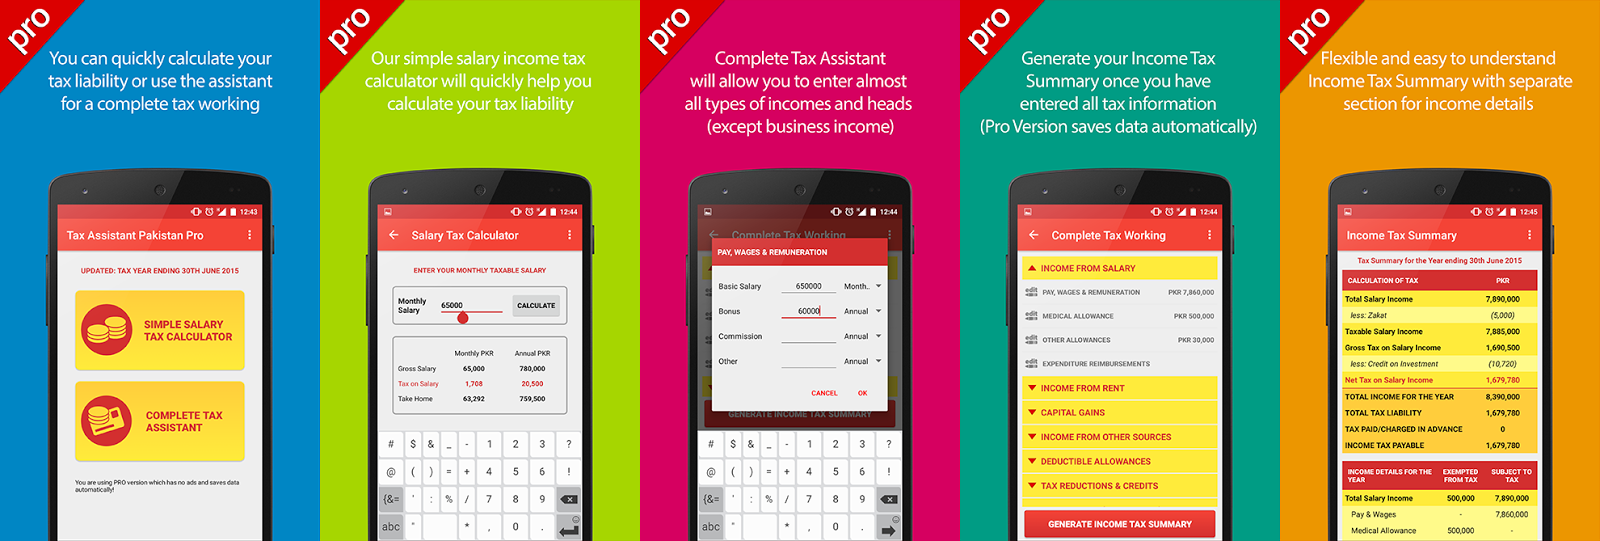 tax assistant pakistan is the first of its kind application for taxpayers based in pakistan it is meticulously designed to allow detailed tax working for tax assistant